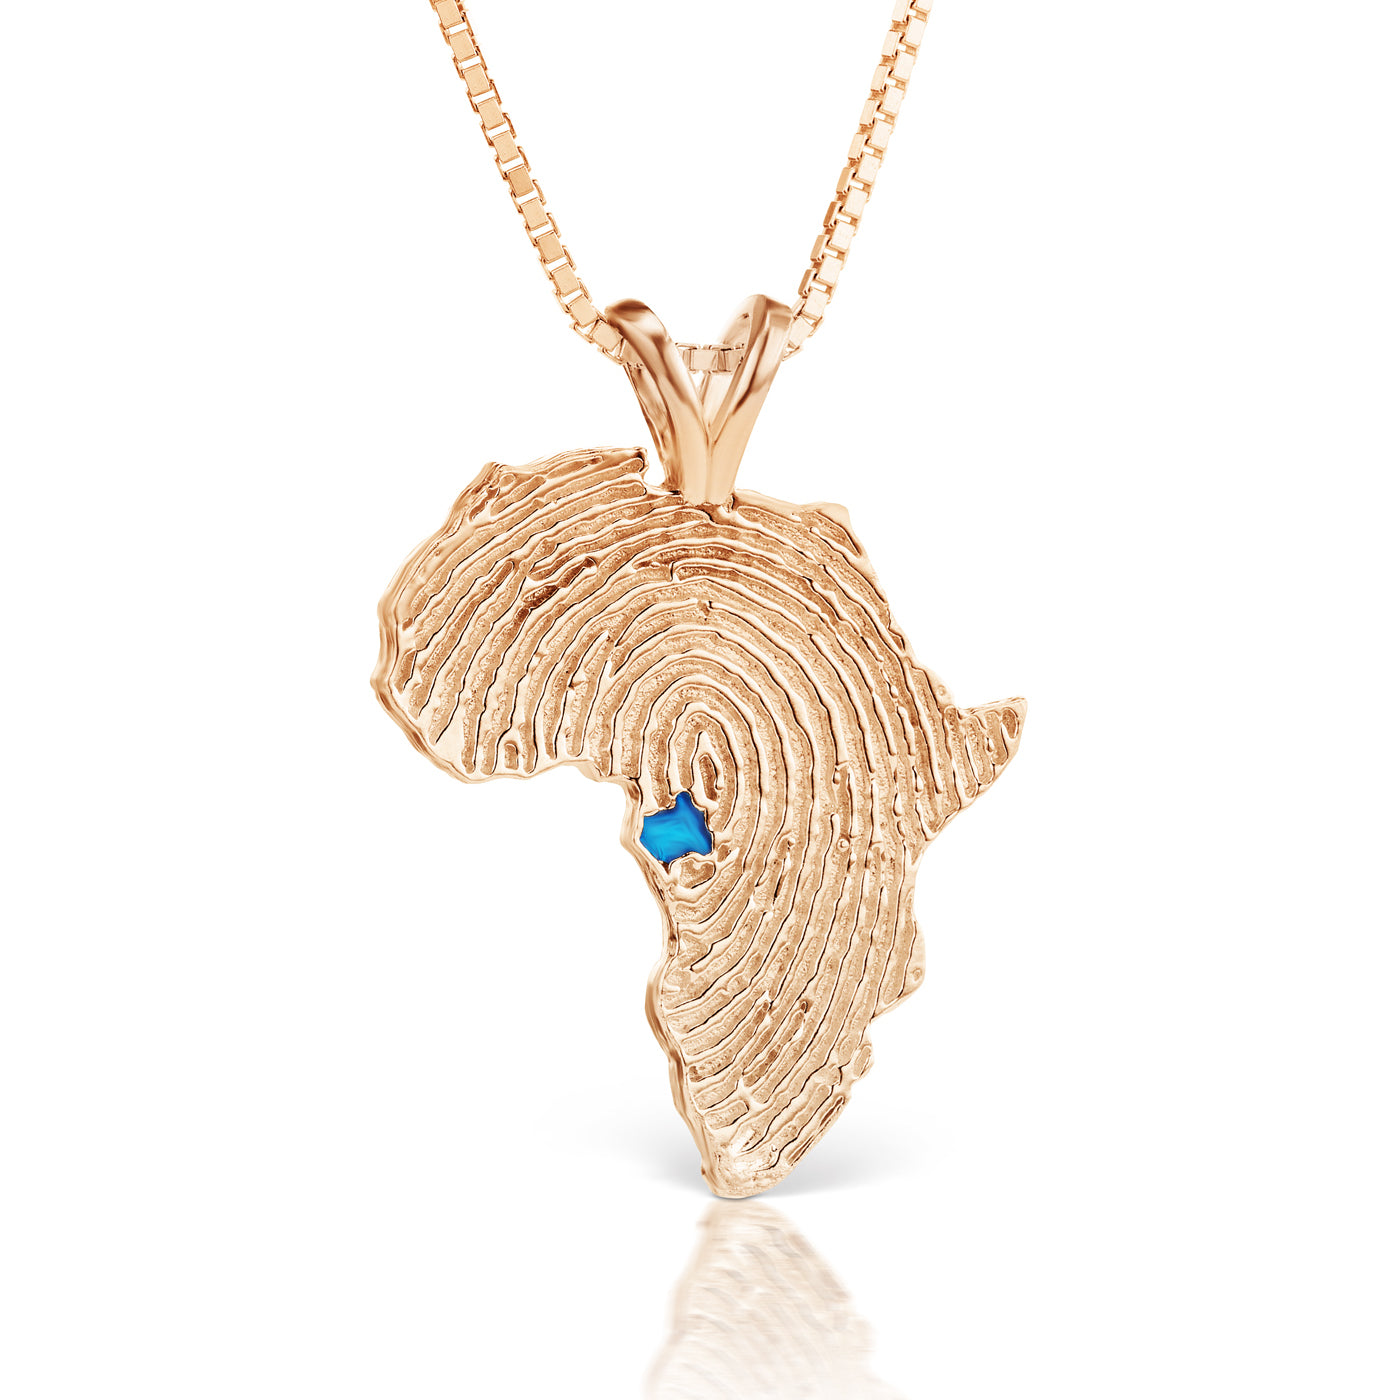 Gabon Heirloom Pendant - 14K Rose Gold 43mm